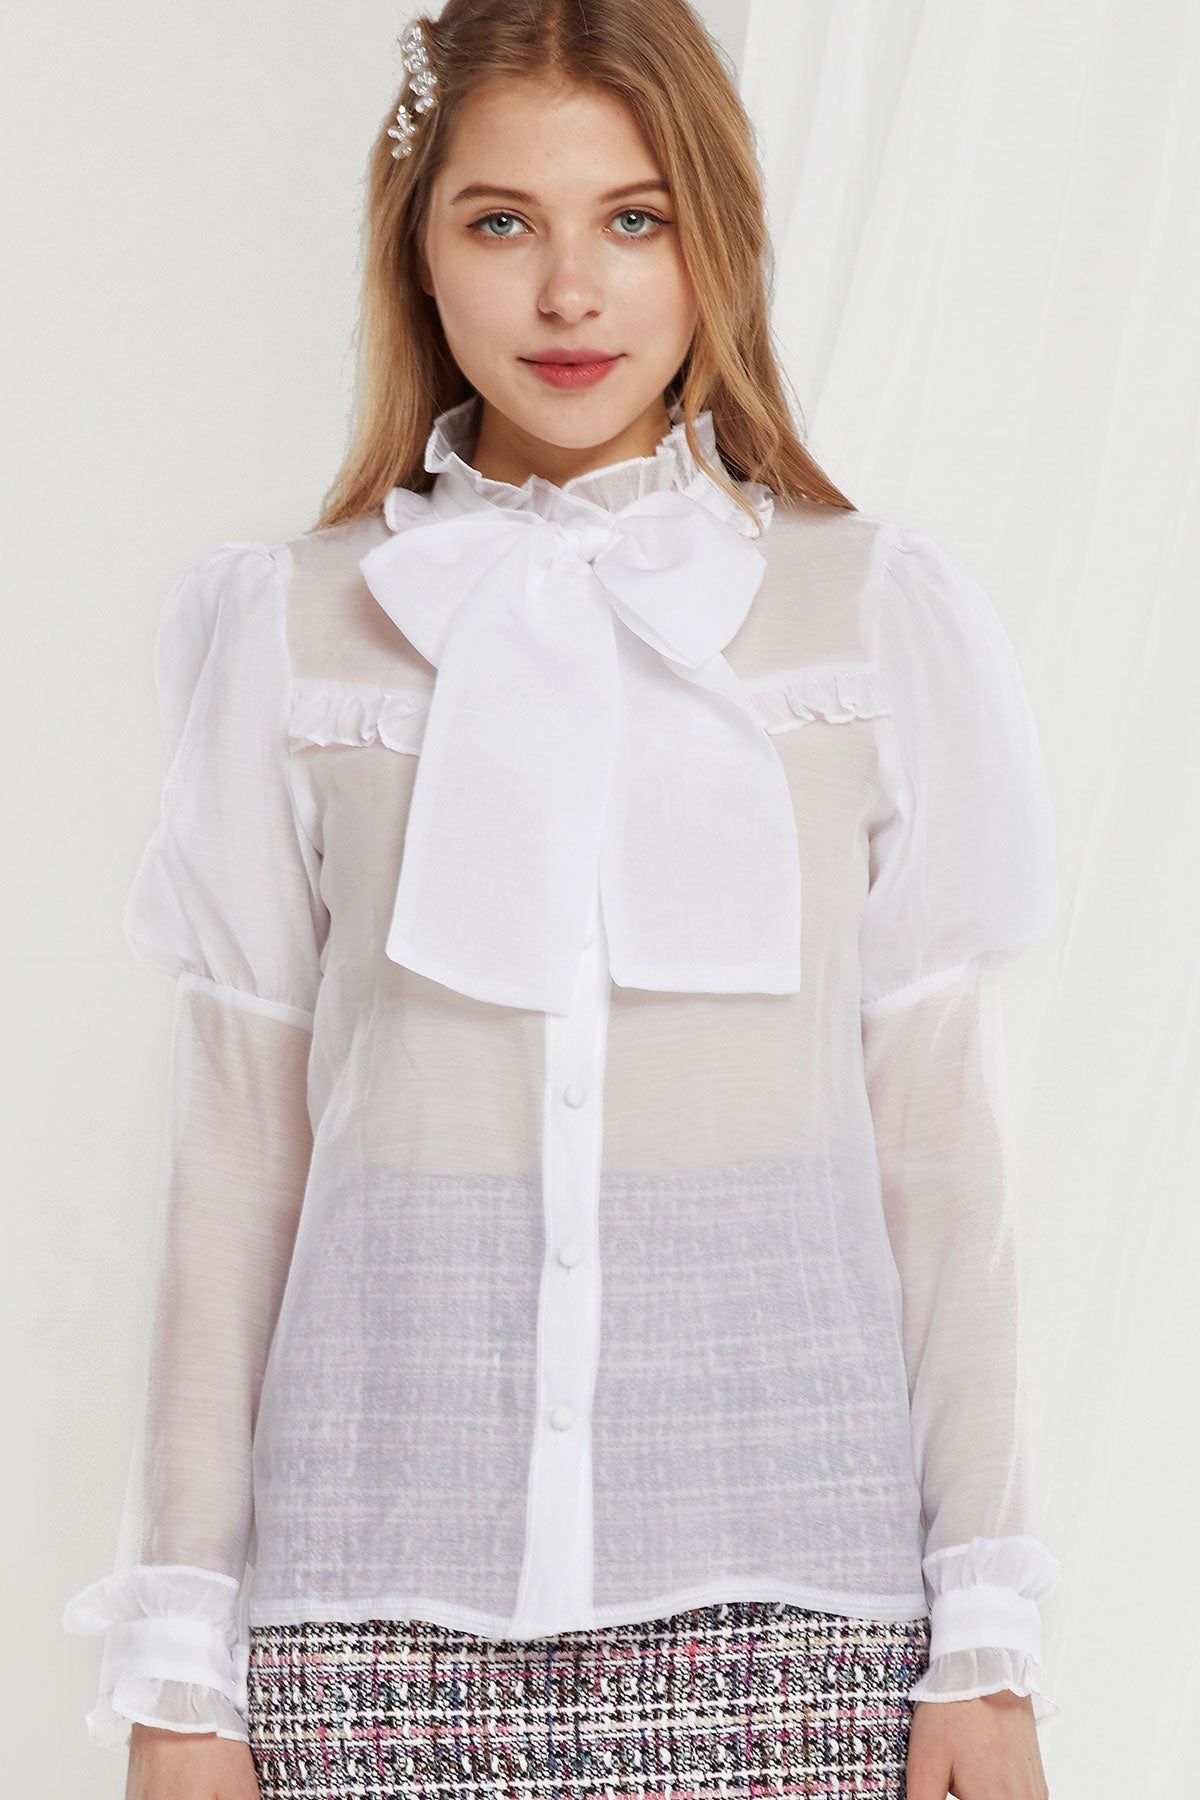 Mabel Juliet Sleeve Sheer Blouse (Pre-Order)